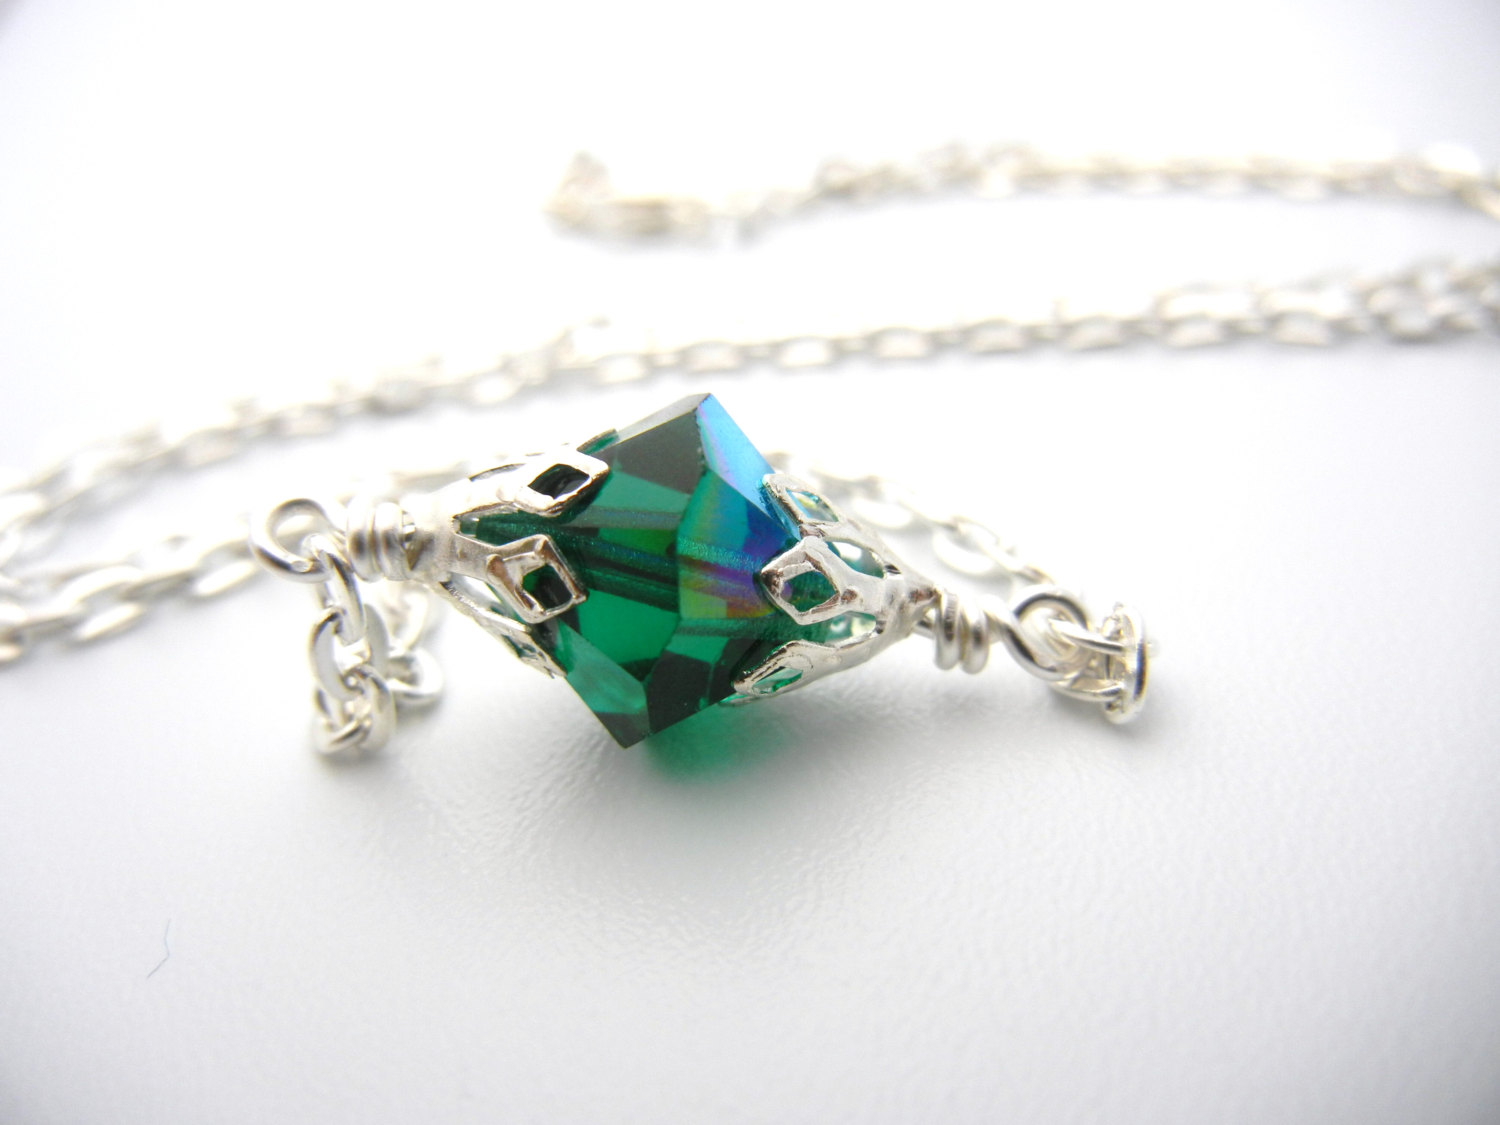 smallville lang inspired kryptonite necklace